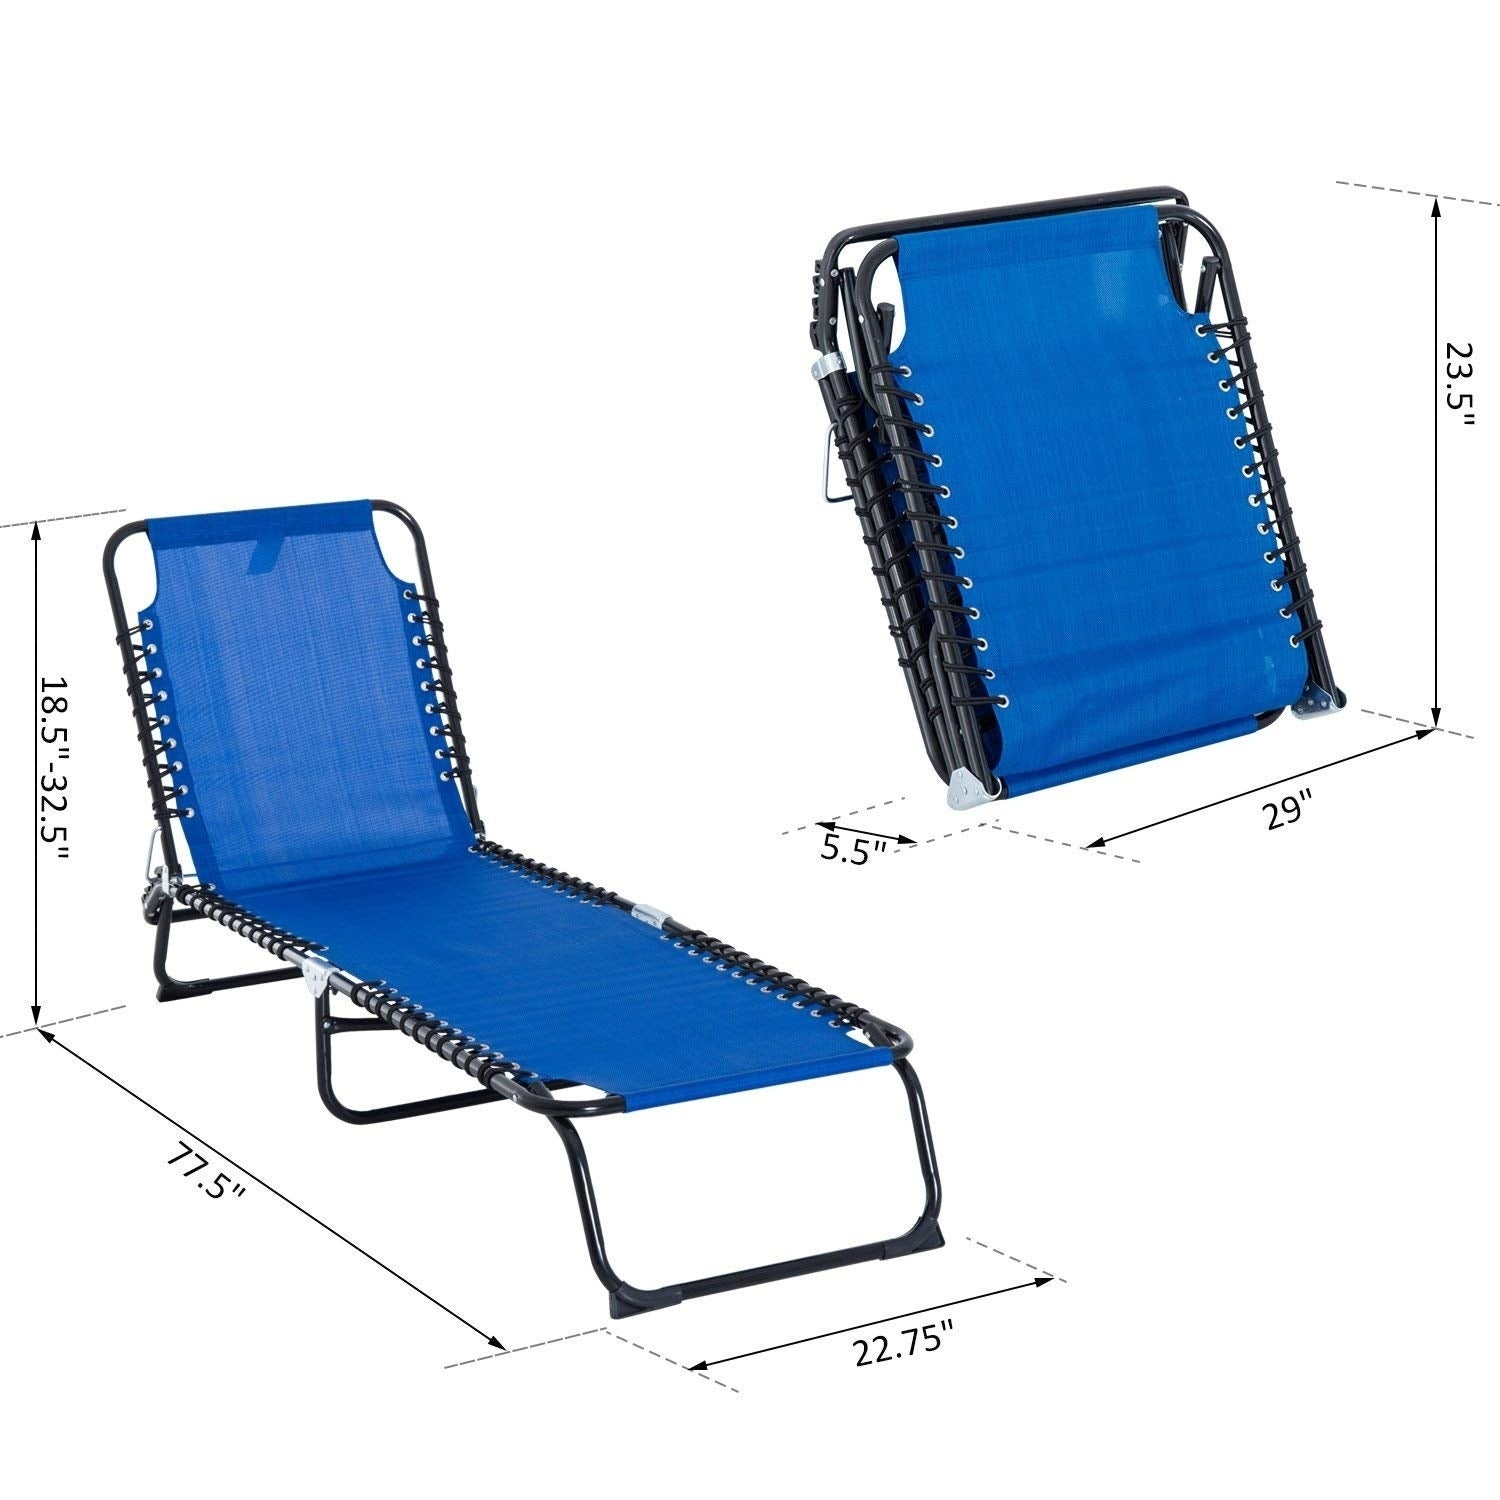 Wondrous Outsunny 3 Position Portable Reclining Beach Chaise Lounge Folding Chair Outdoor Patio Light Blue Cjindustries Chair Design For Home Cjindustriesco